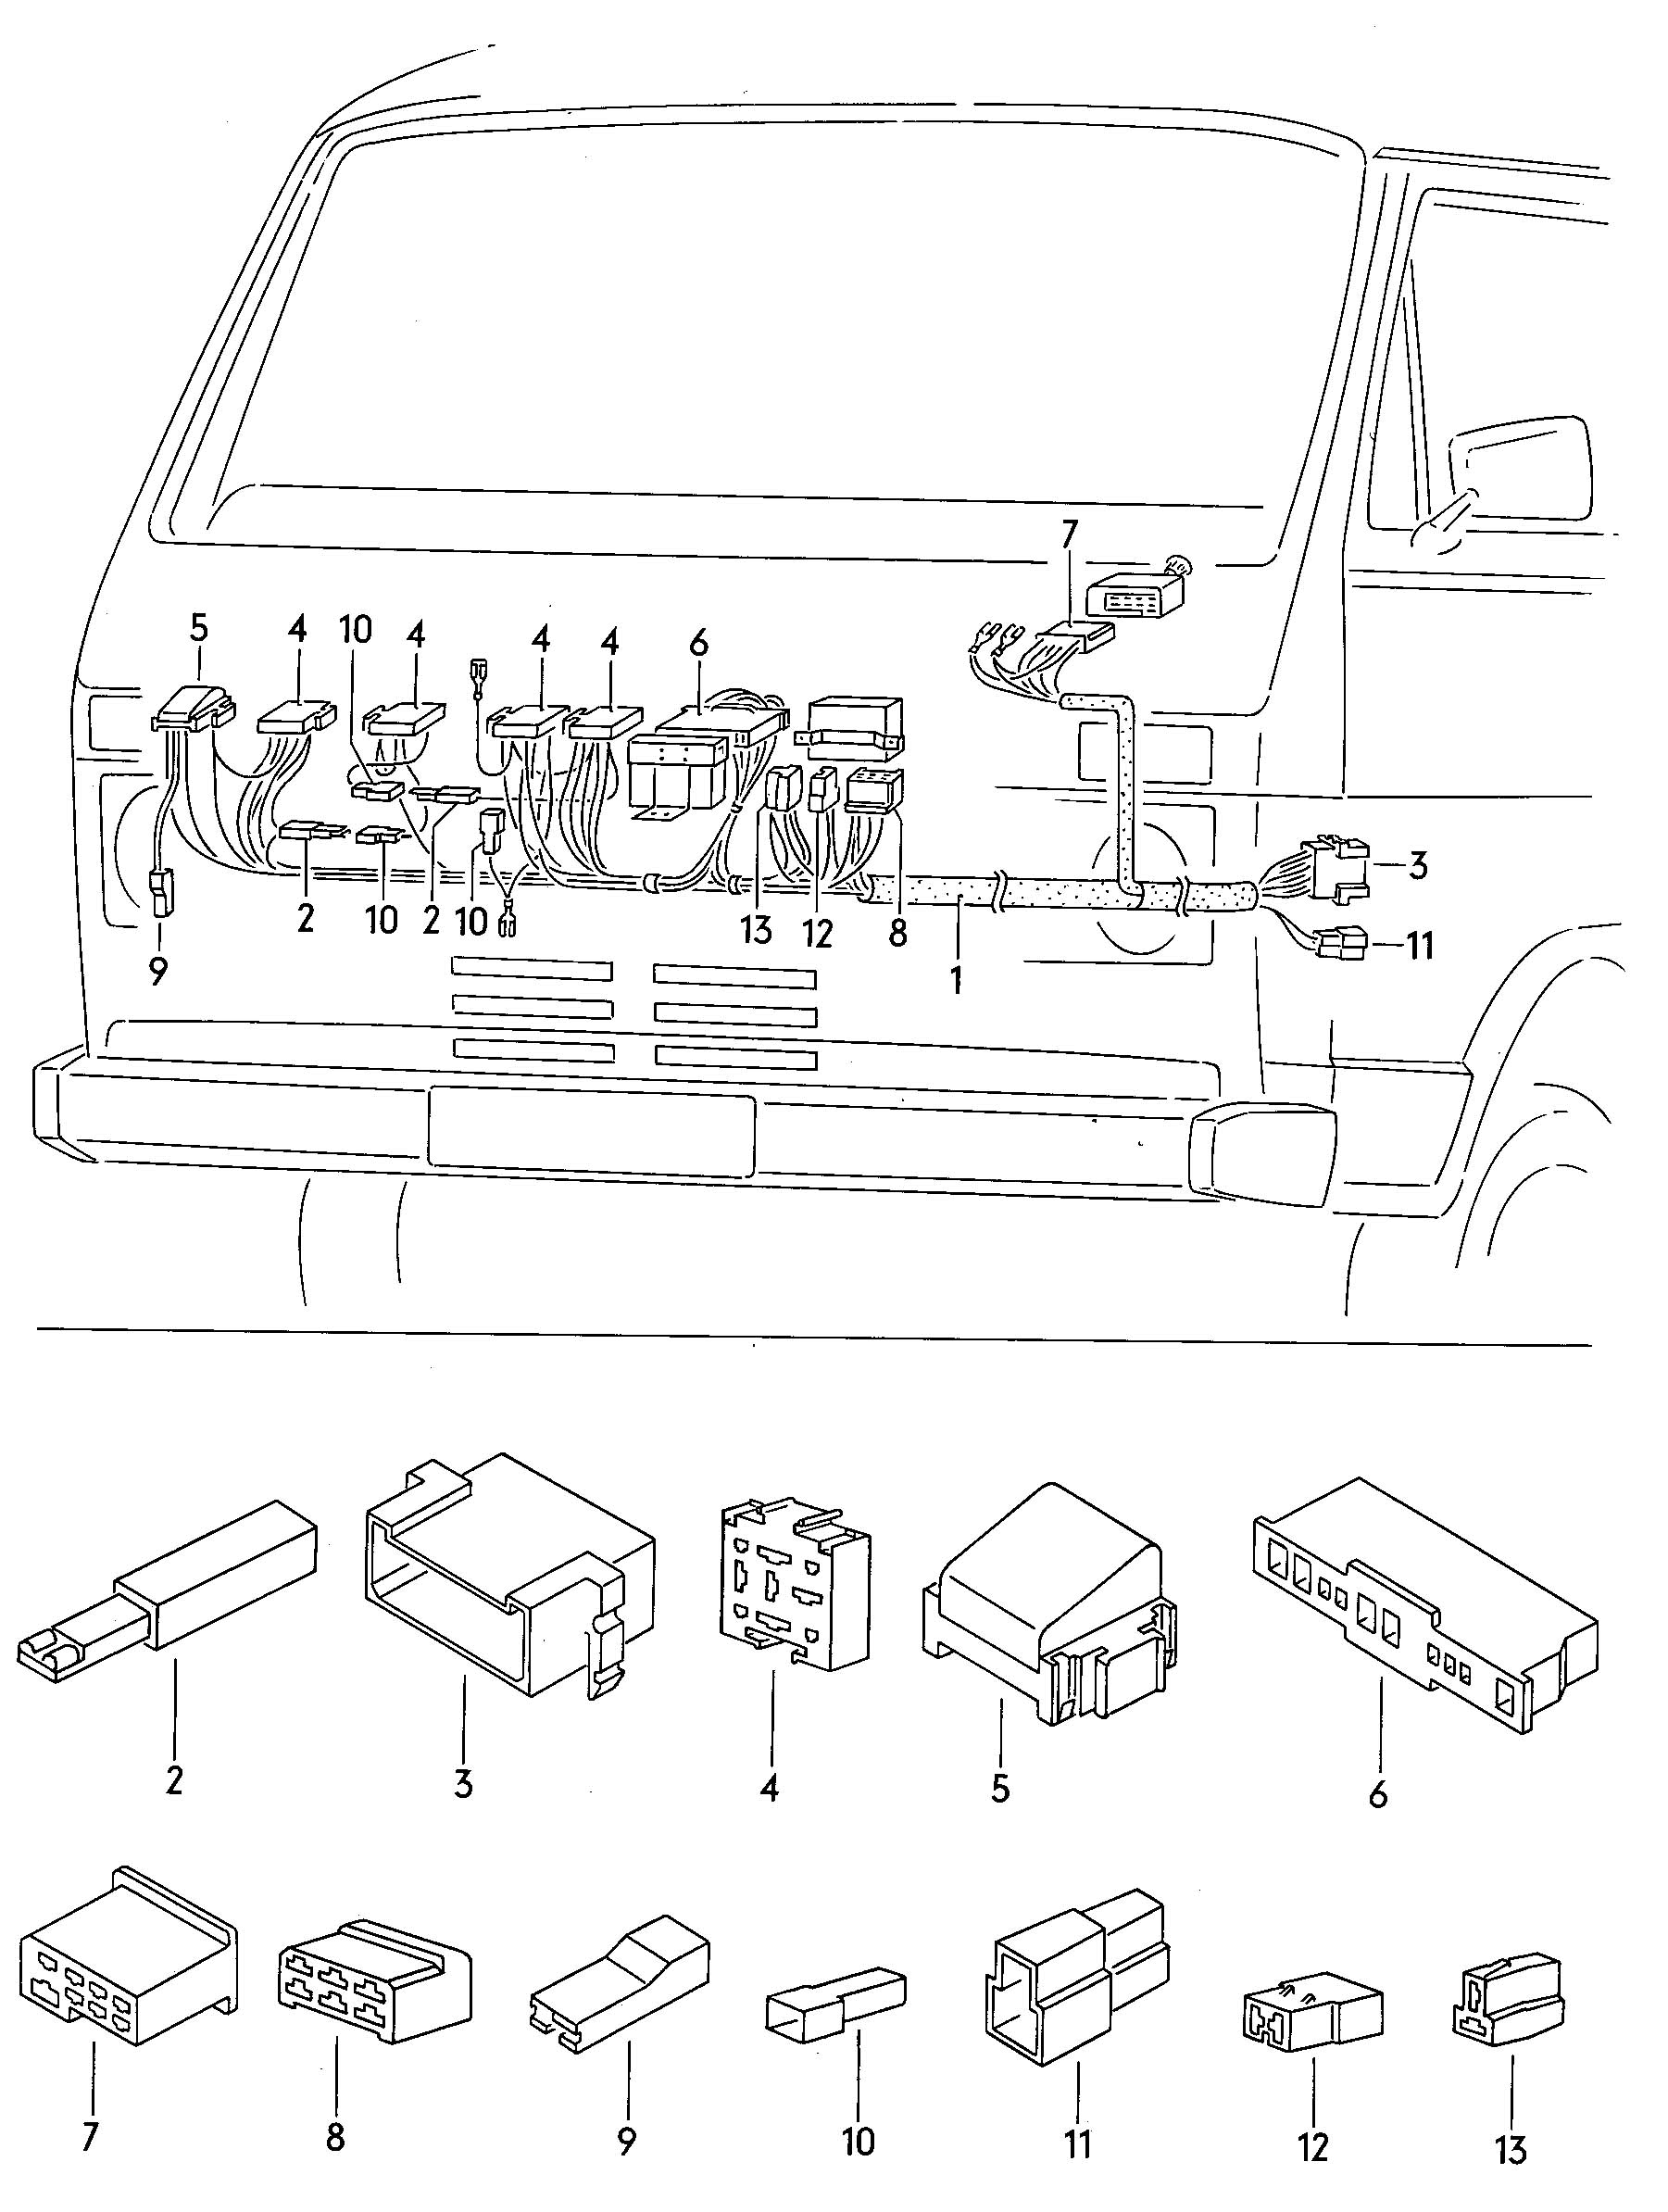 volkswagen vanagon connecting piece clip automatic adapter 1981 vanagon engine coil wiring